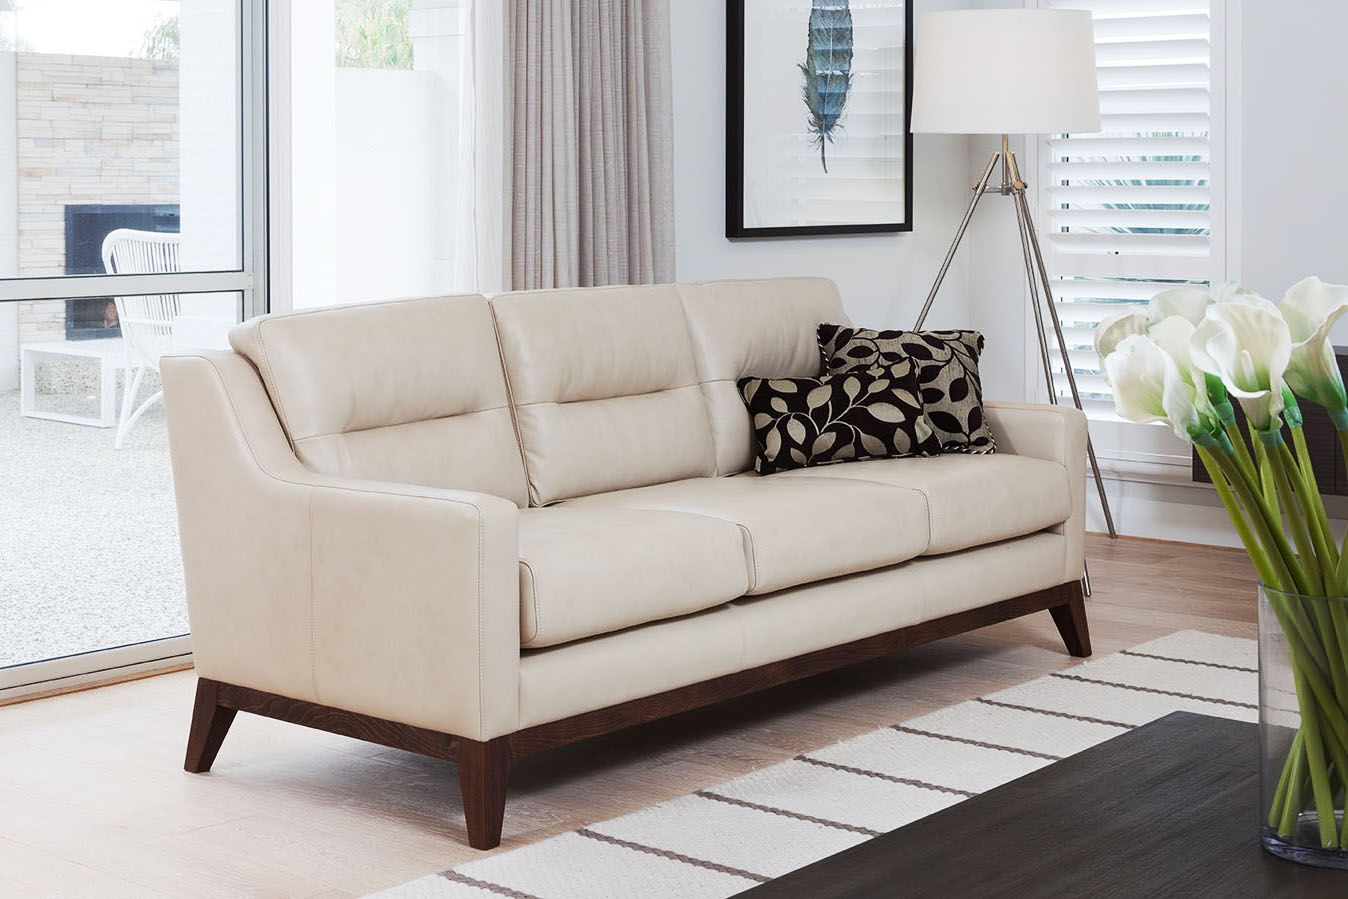 Good Toulon U2013 Sofa Design And Manufacture, Perth   Torrance And McKenna